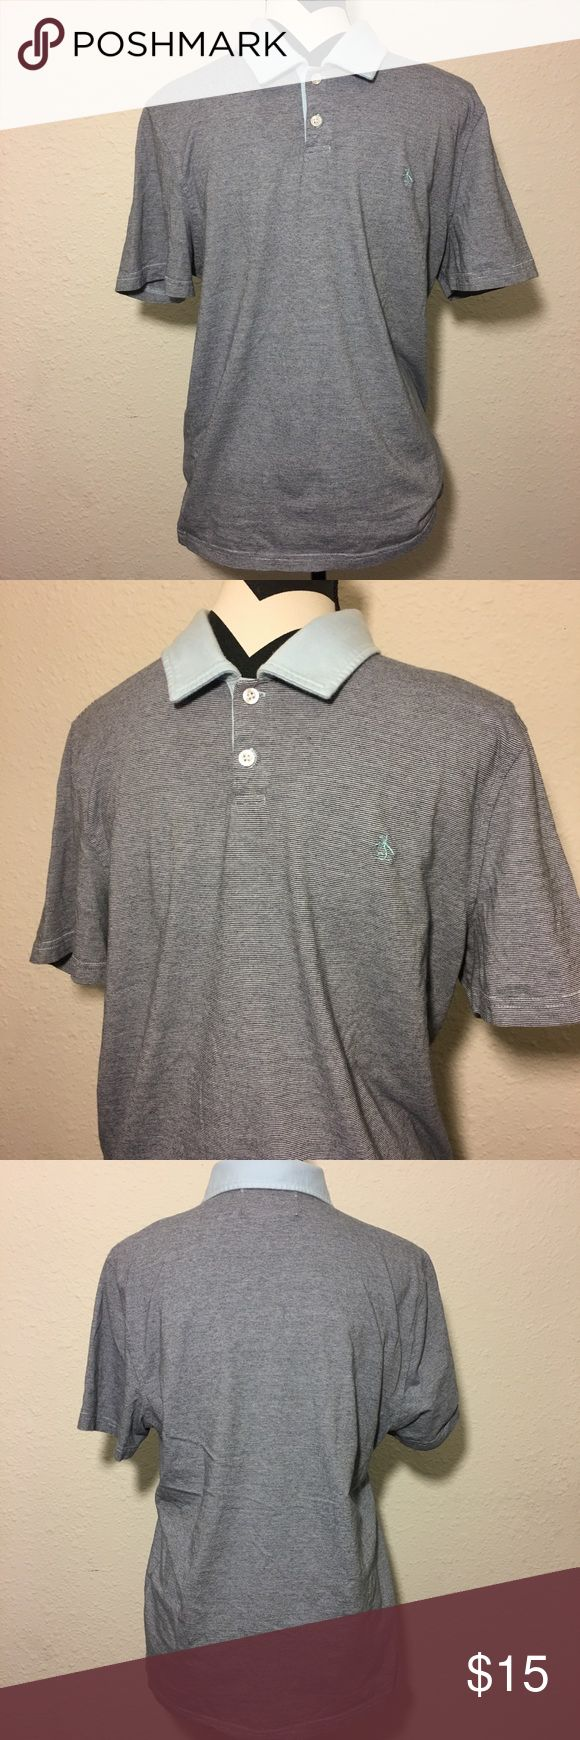 "Men's original penguin polo shirt Men's original penguin polo shirt ,pinstriped navy and cream the collar is Light blue - missing care tag) Approximate measurements are made flat and not stretched  Chest 20 1/2"" - sleeves 8 1/2"" - Length 26 1/2"" Original Penguin Shirts Polos"